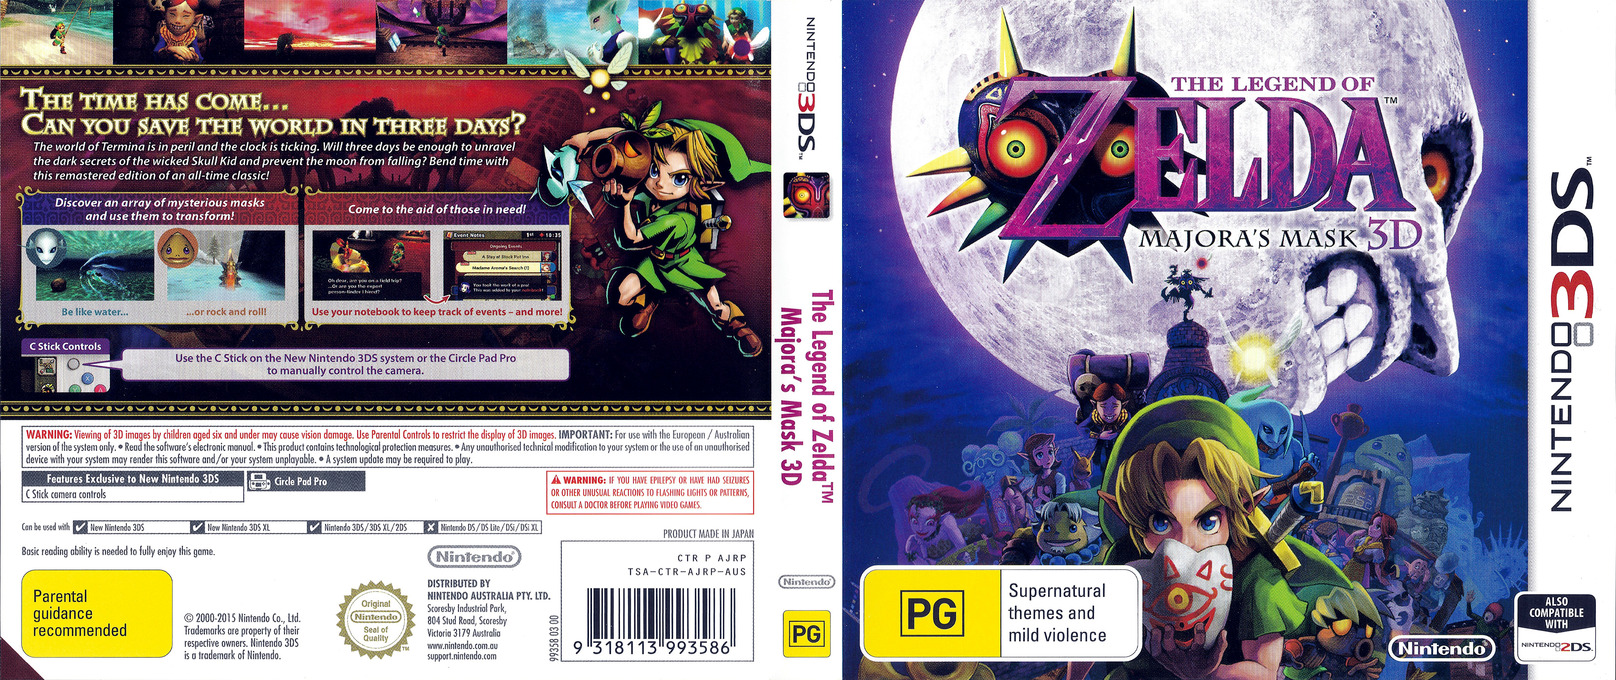 The Legend of Zelda - Majora's Mask 3D 3DS coverfullHQ (AJRP)